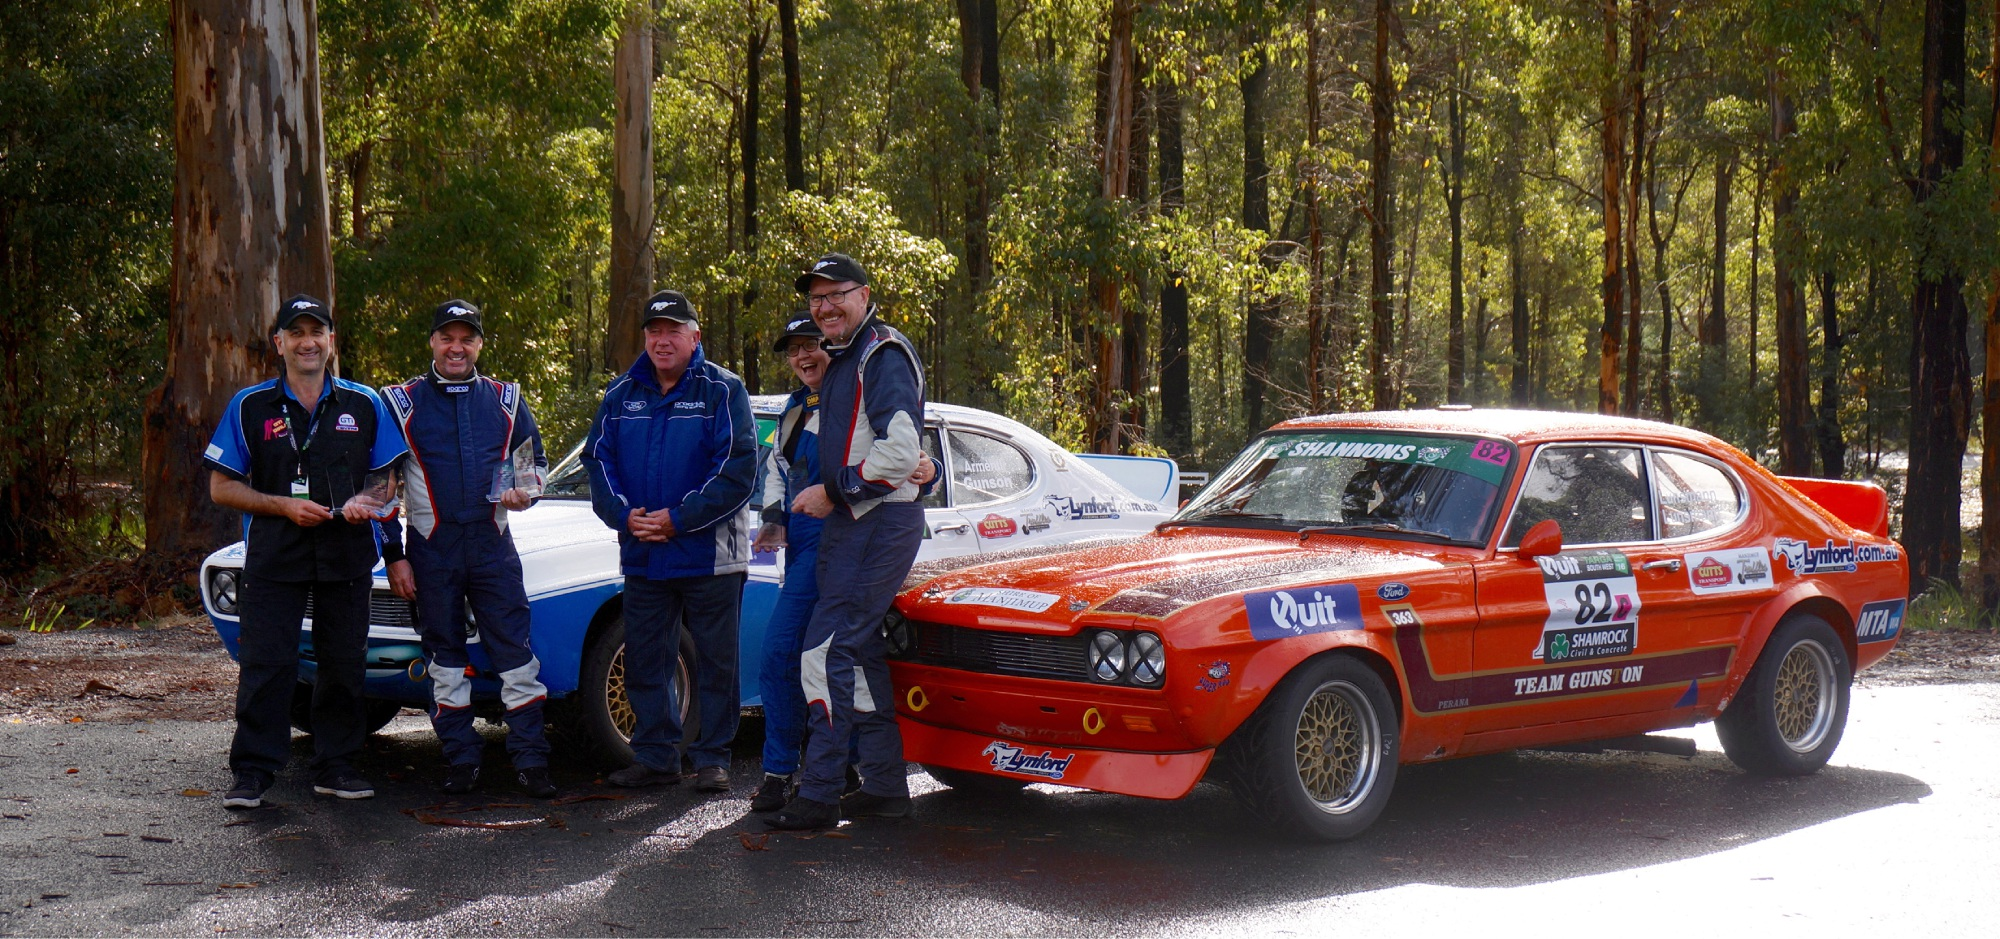 Front row: Murray Armenti (co-driver) and Simon Gunson (driver), Richard Cox, and Helen and Jurgen Lunsmann who competed in the A2.